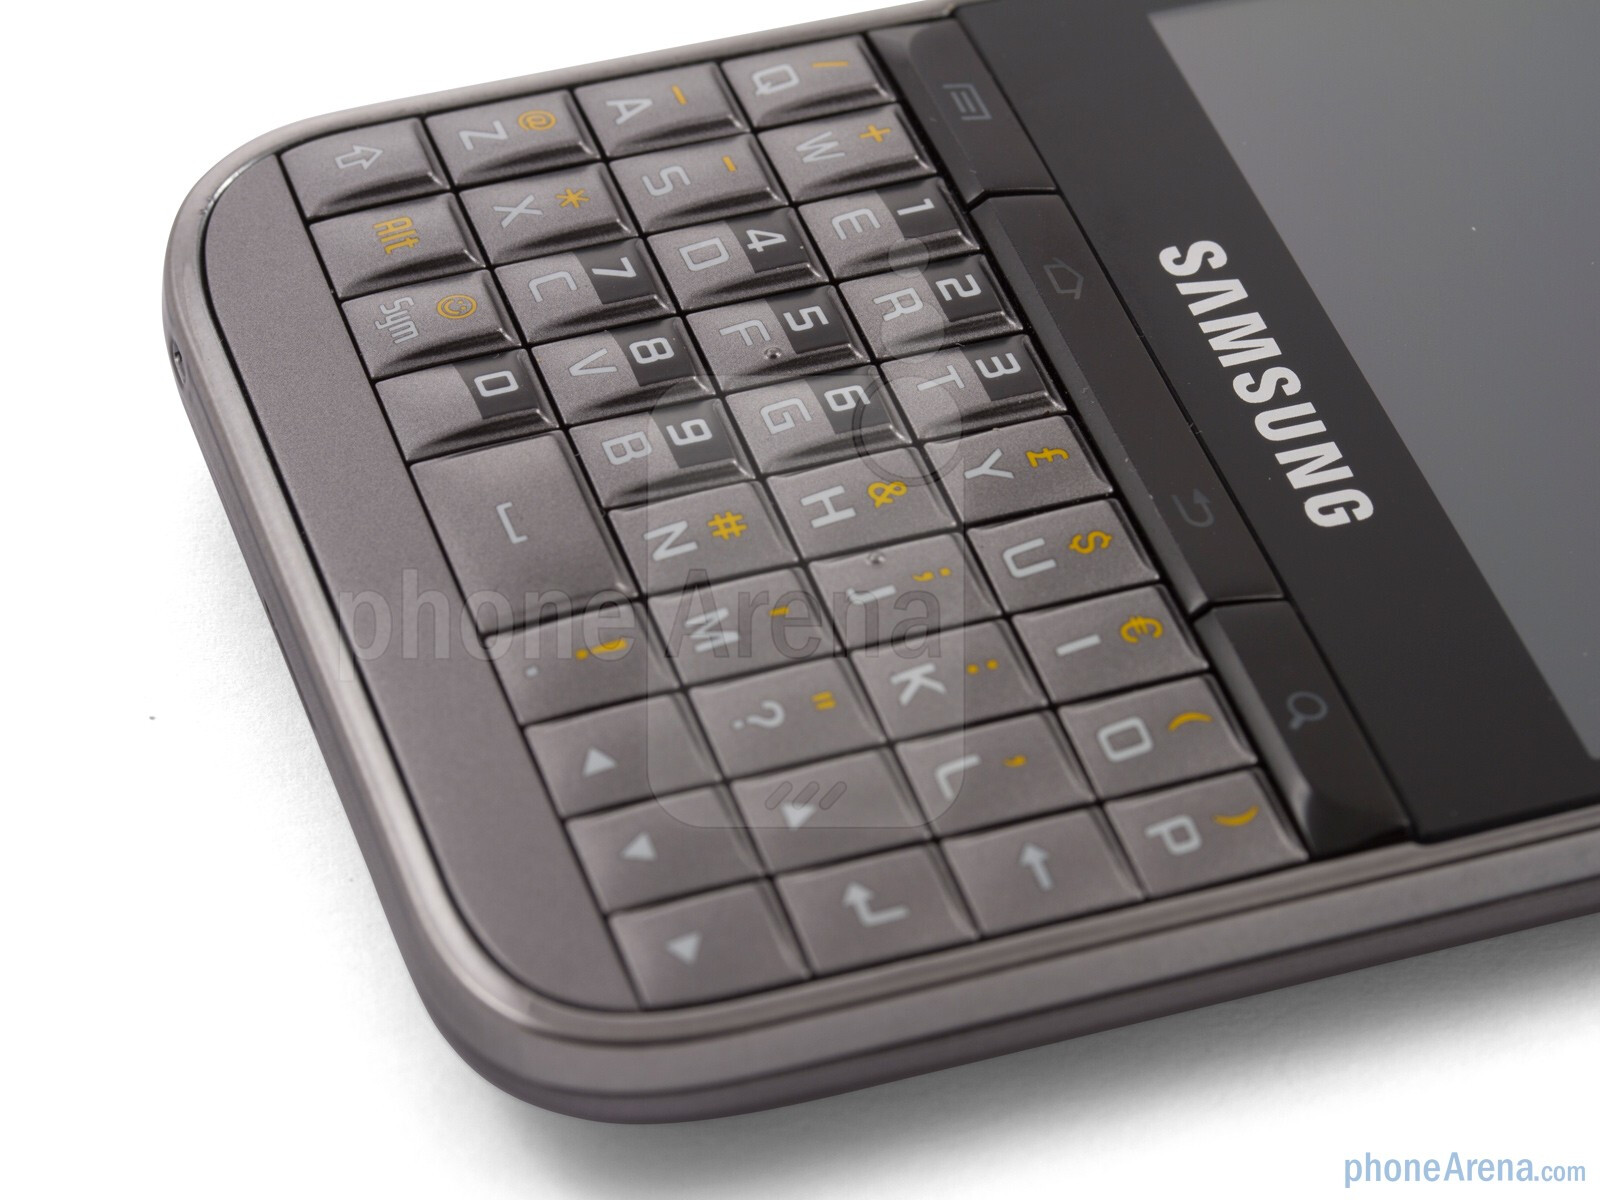 Camera Samsung Qwerty Android Phone the qwerty keyboard image from samsung galaxy pro review with a blackberry esque form factor 3mp autofocus camera and 2 8 capacitive screen also packs 4 tiered keyboa